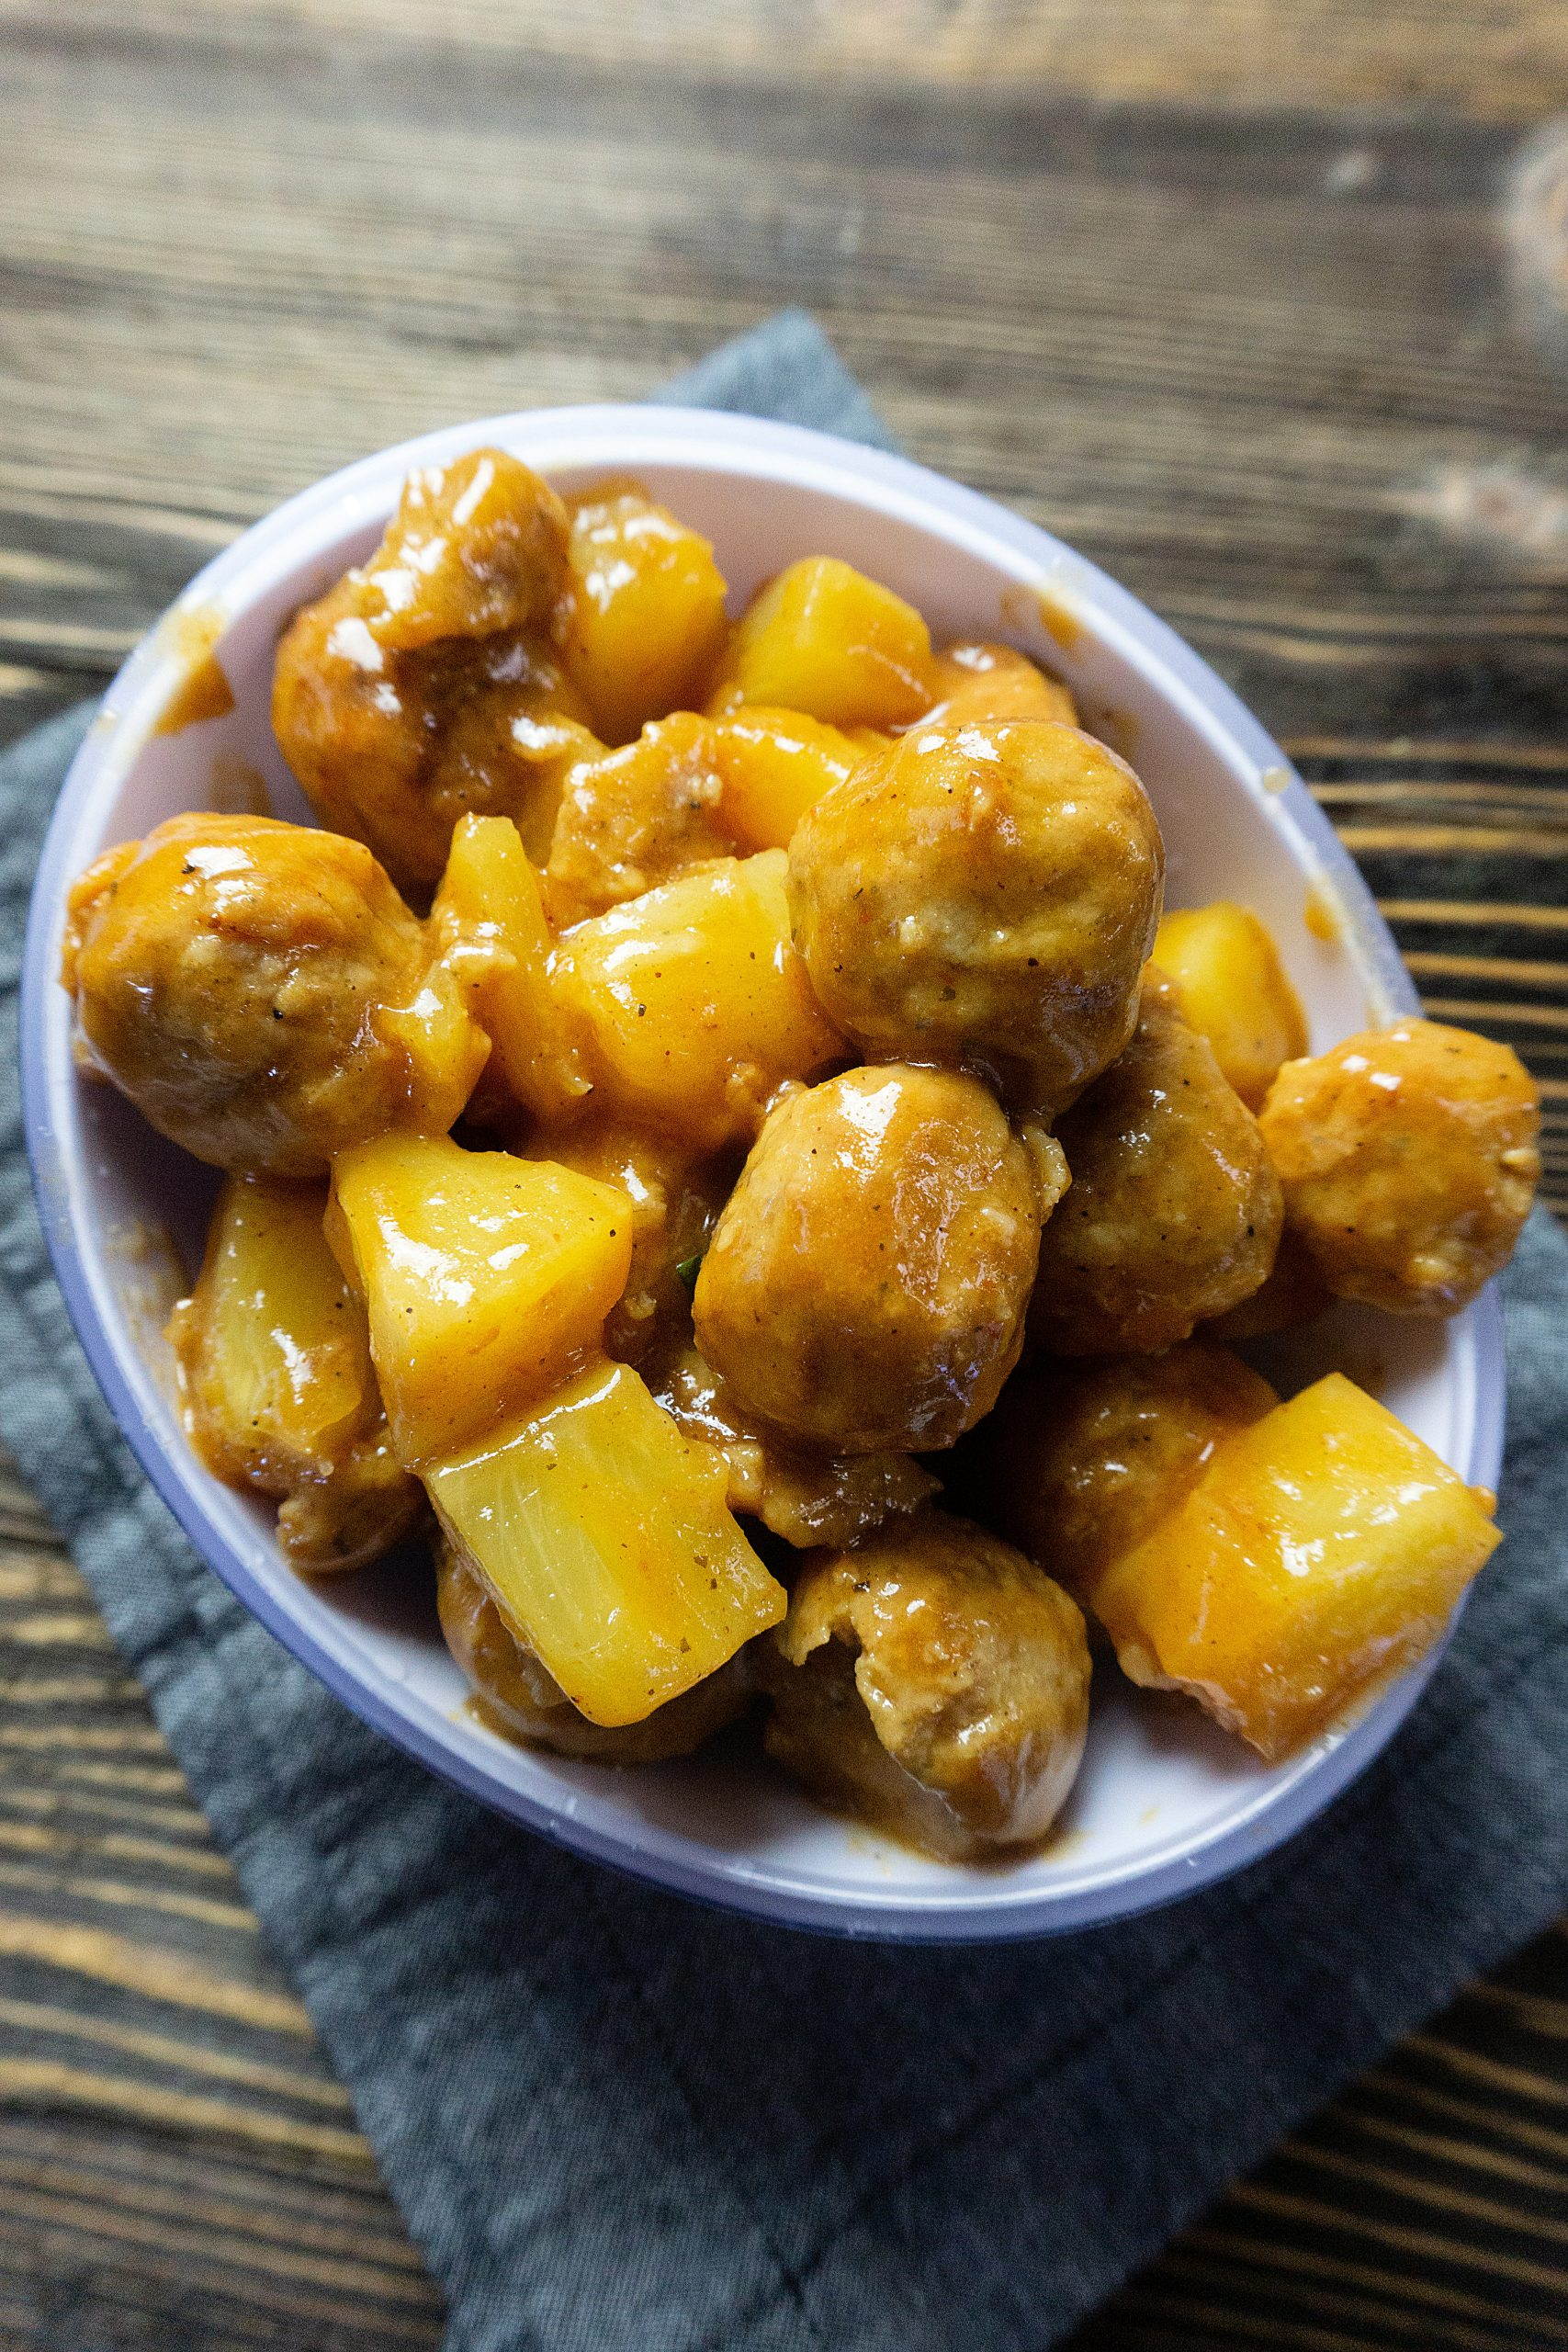 The Best Pineapple Meatballs Recipe - IP, Stove or Slow Cooker